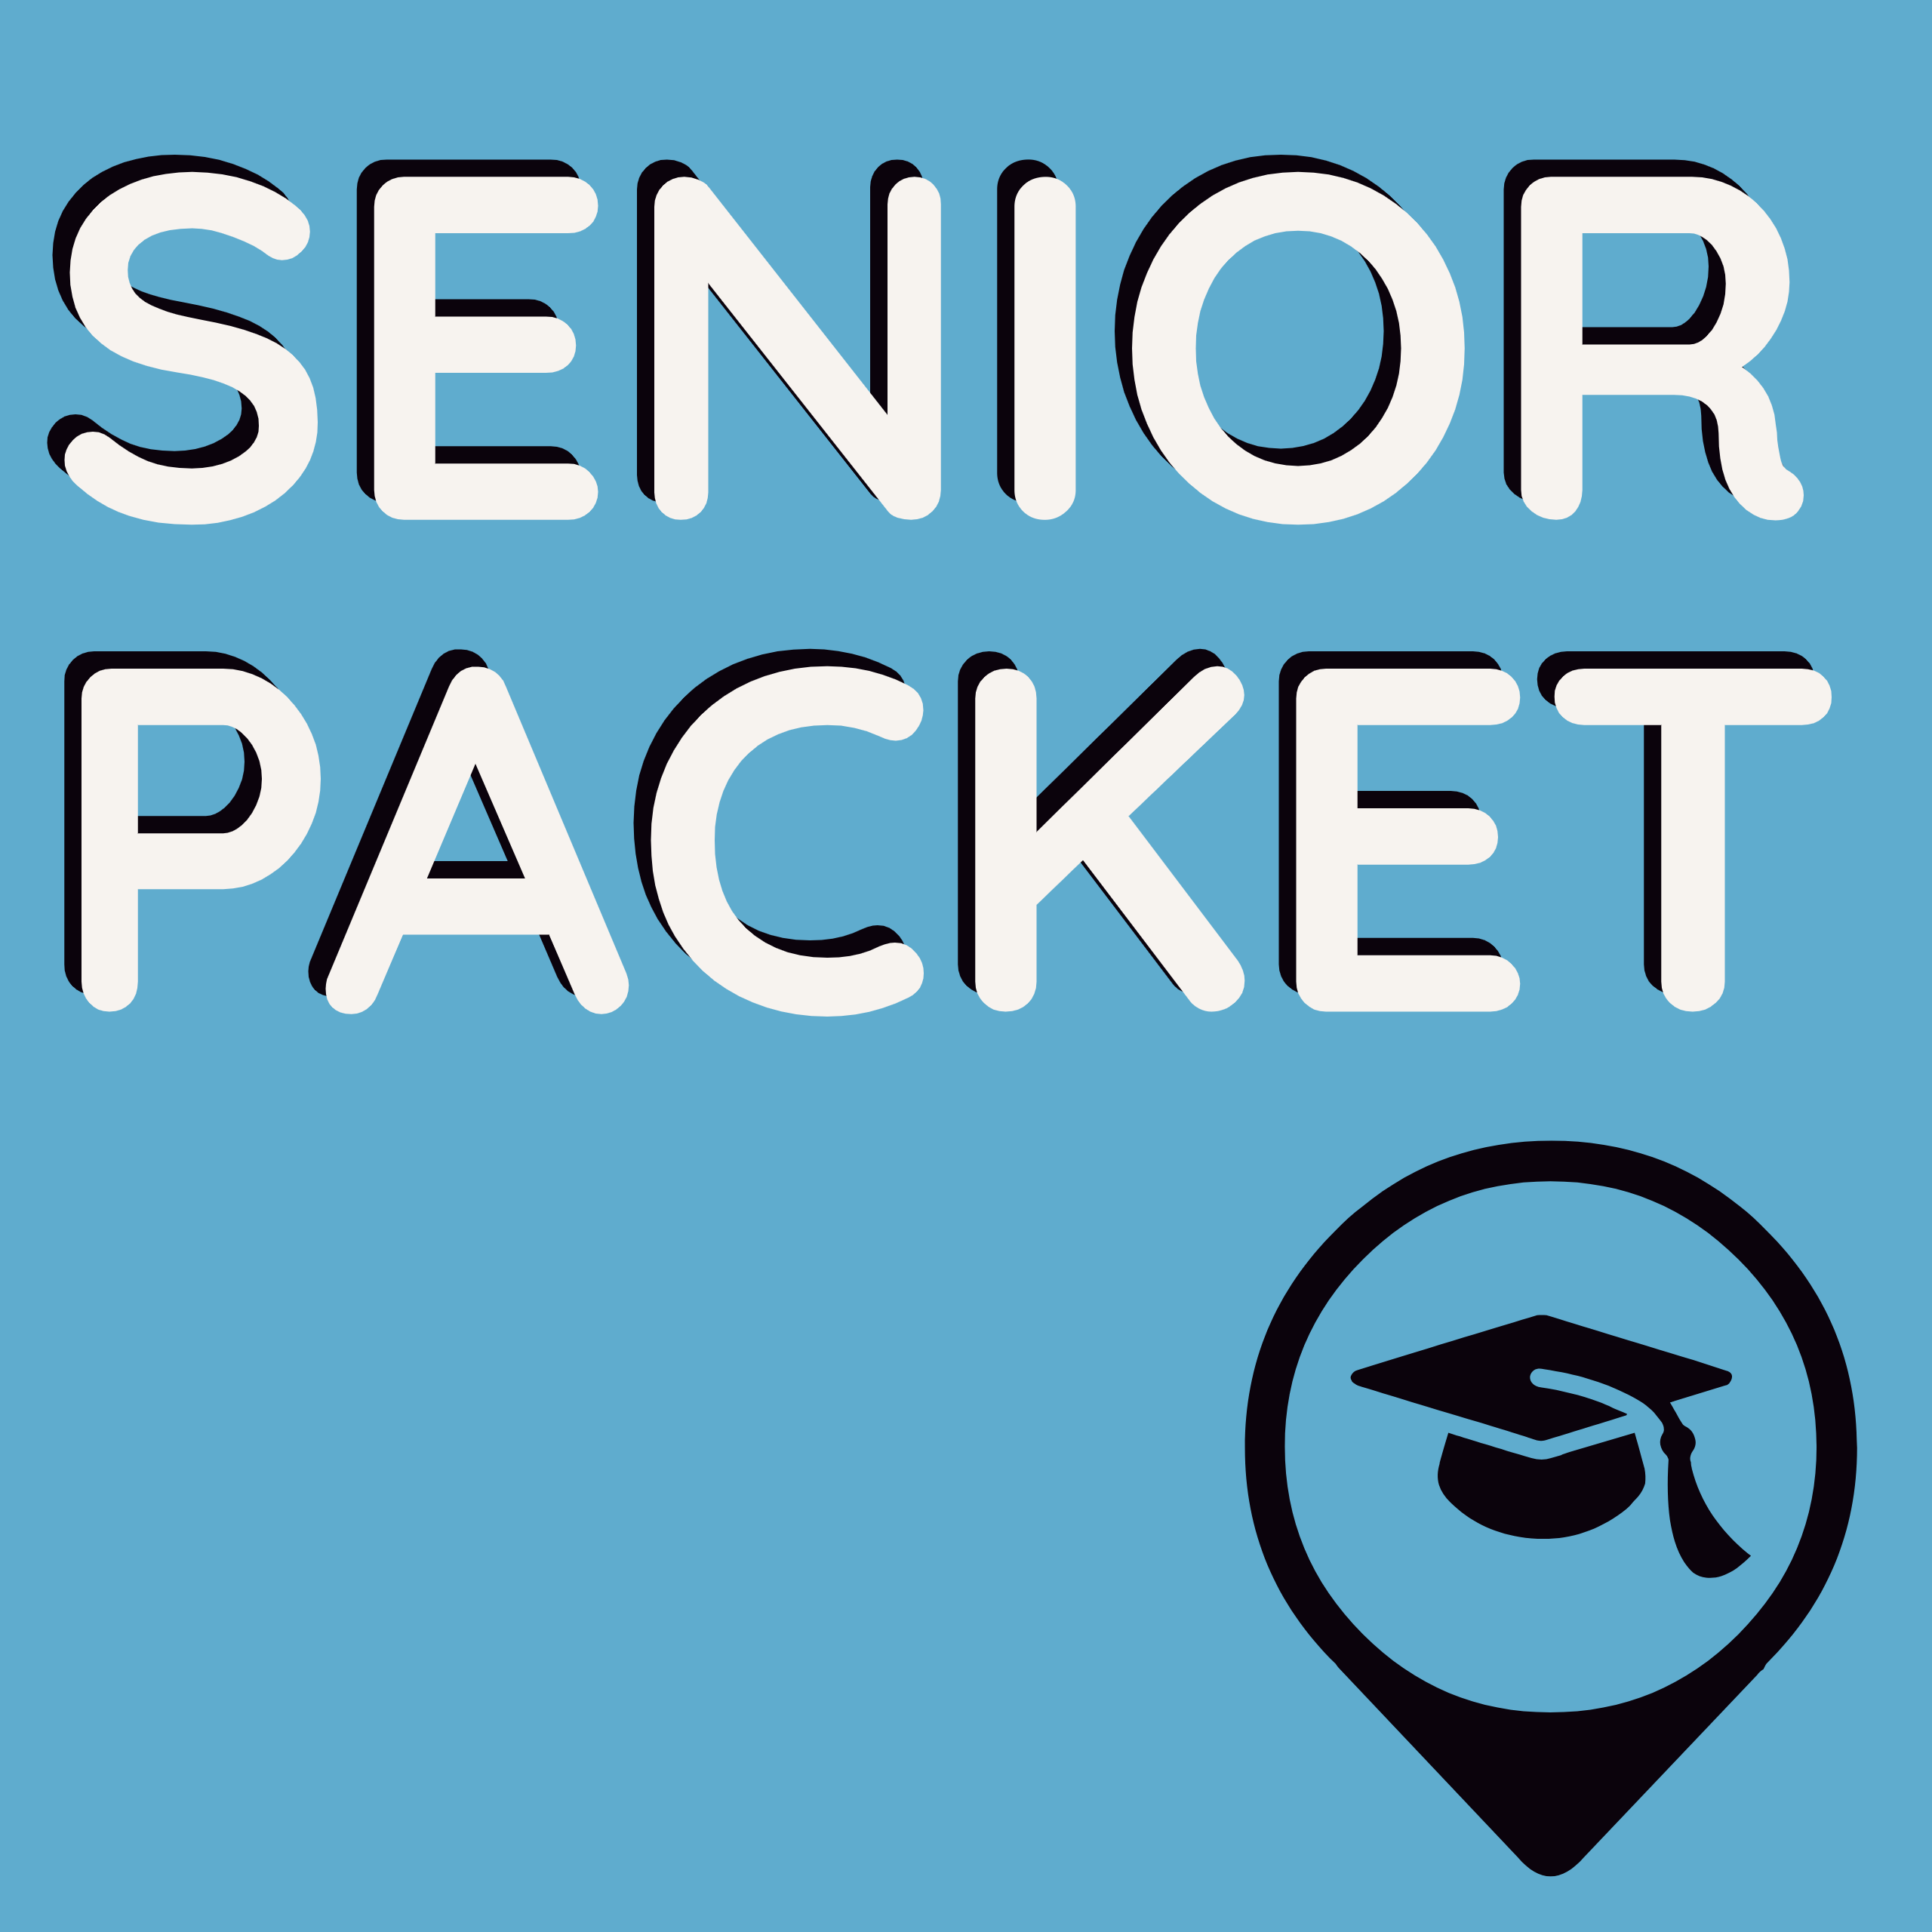 Senior Packet